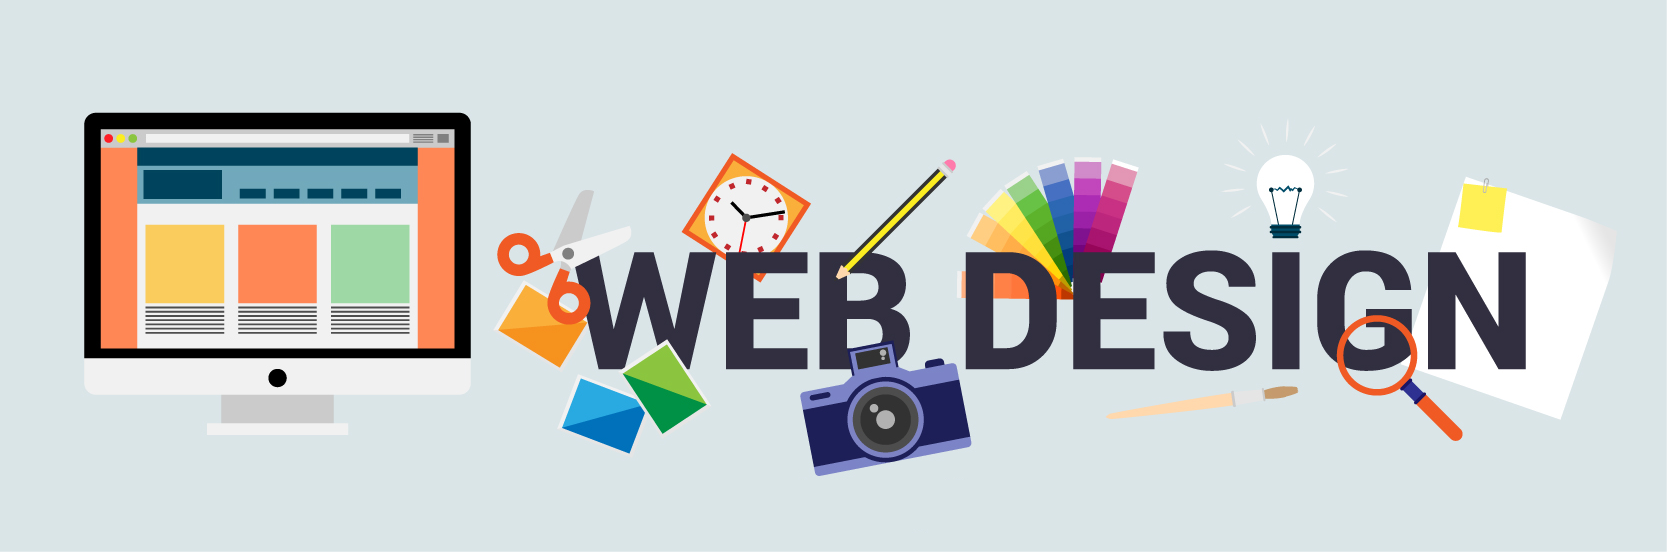 Reasonably Priced Web Design Services